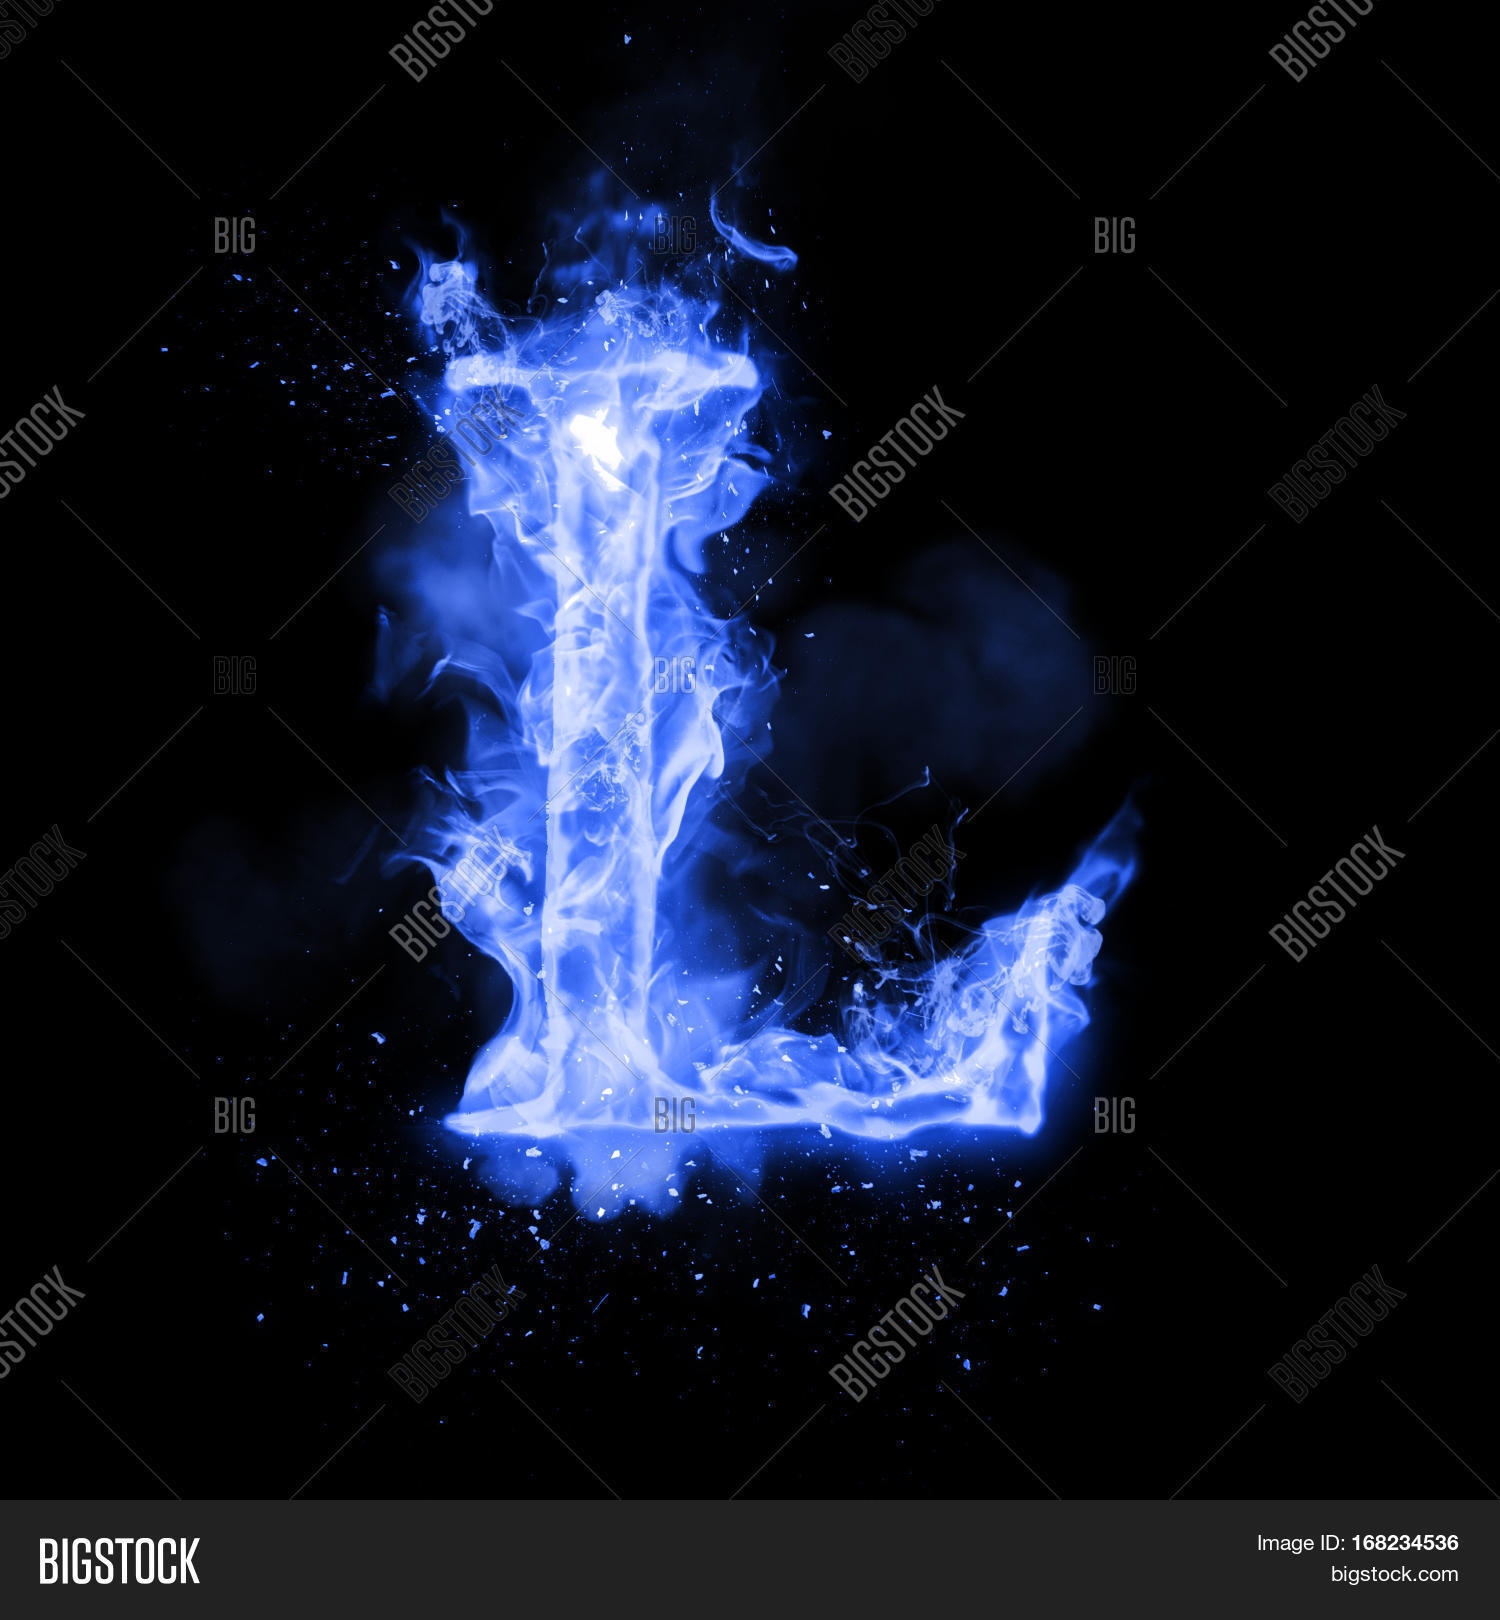 Fire Letter L Burning Blue Flame. Image & Photo | Bigstock